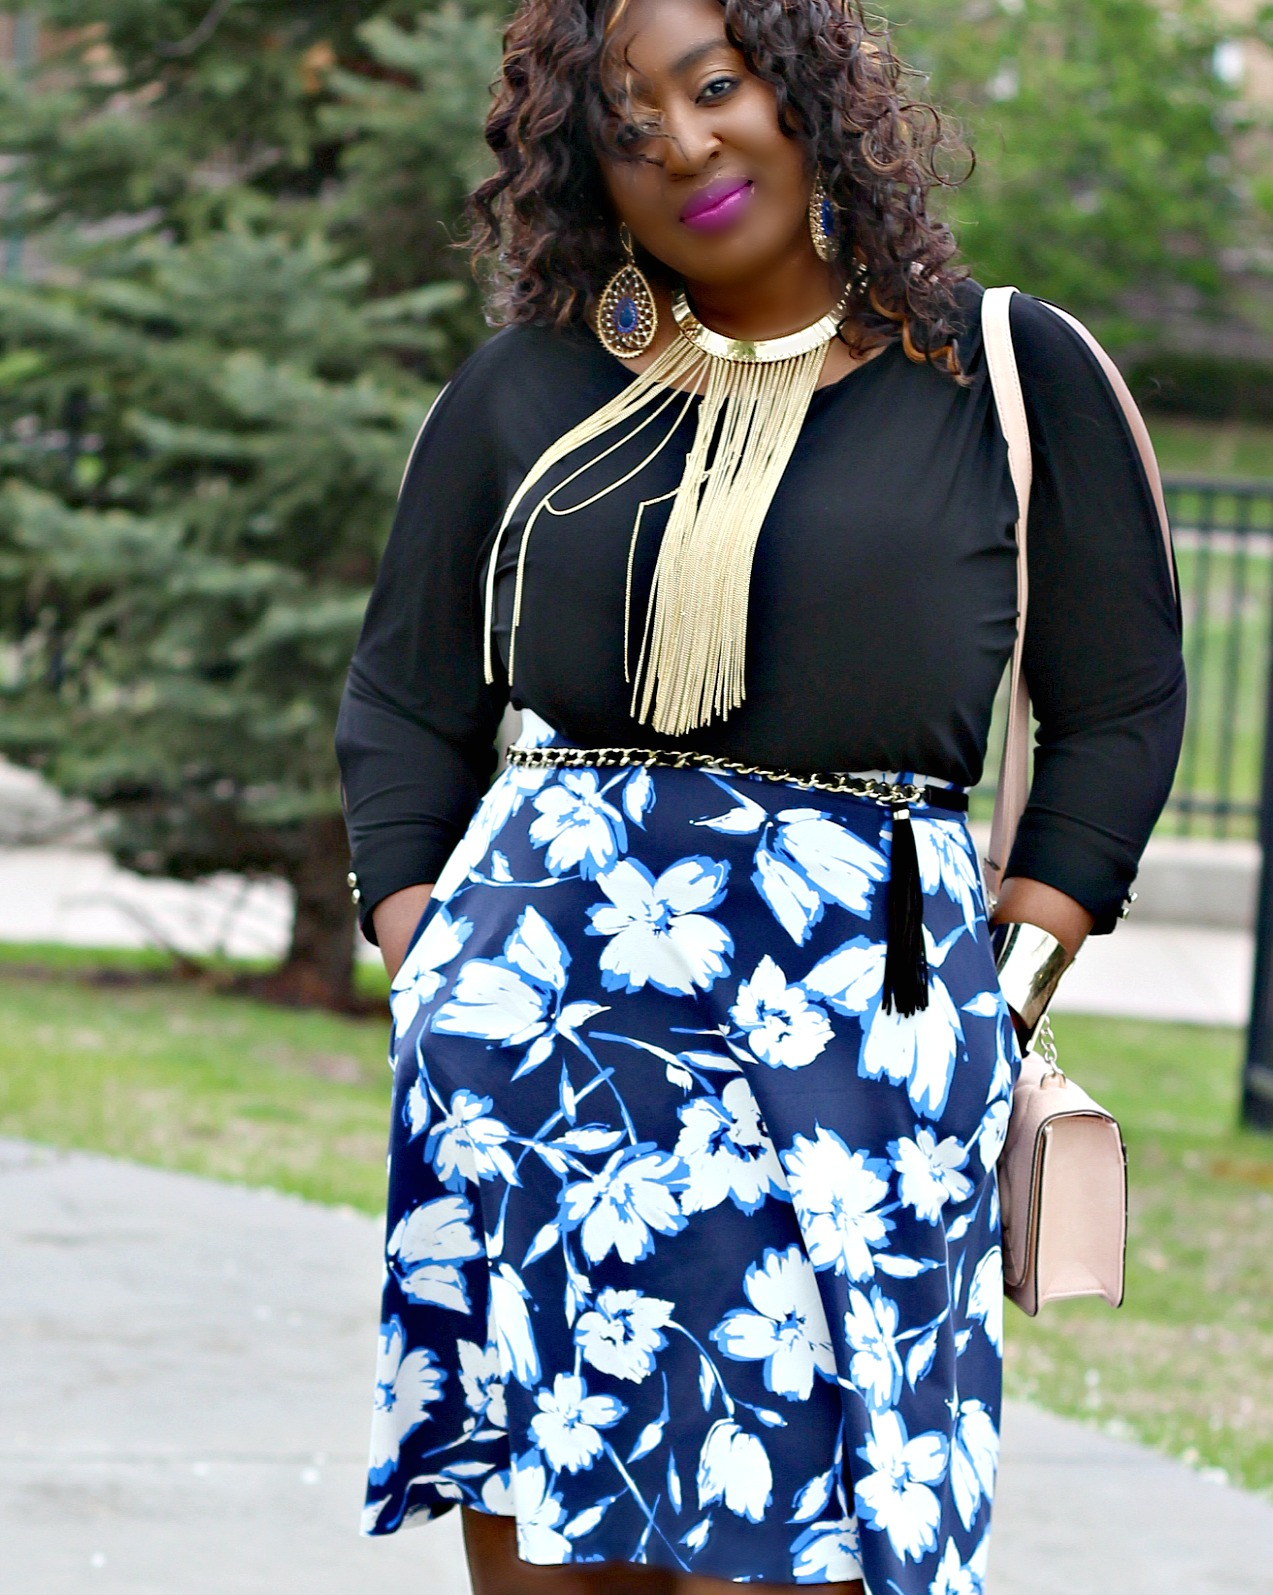 Floral-prints-skirt-and-statement-necklace